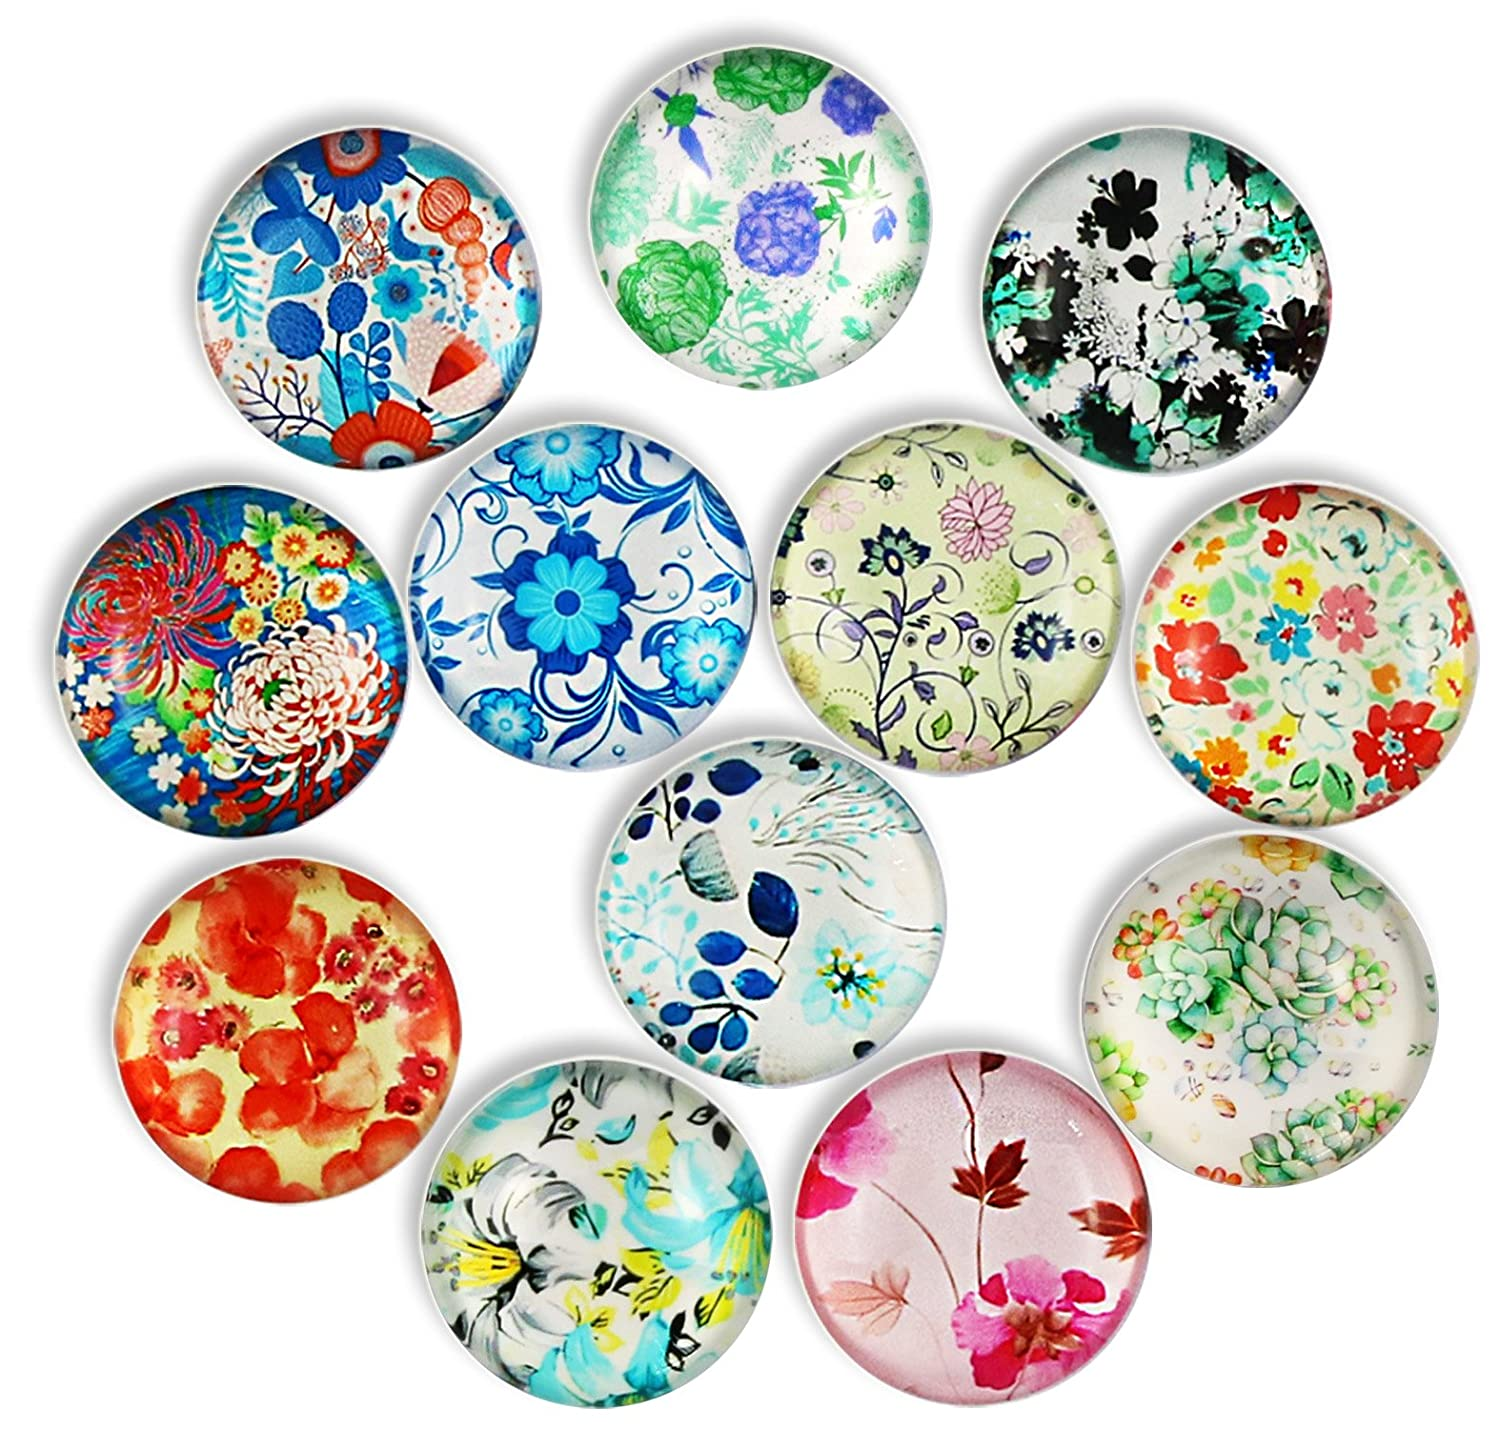 12pcs Flower Refrigerator Magnets, Cosylove Crystal Glass Fridge Magnets for Office Cabinets, Whiteboards, Photos, Beautiful Decorative Magnets for Holiday Gift, Decorate Home